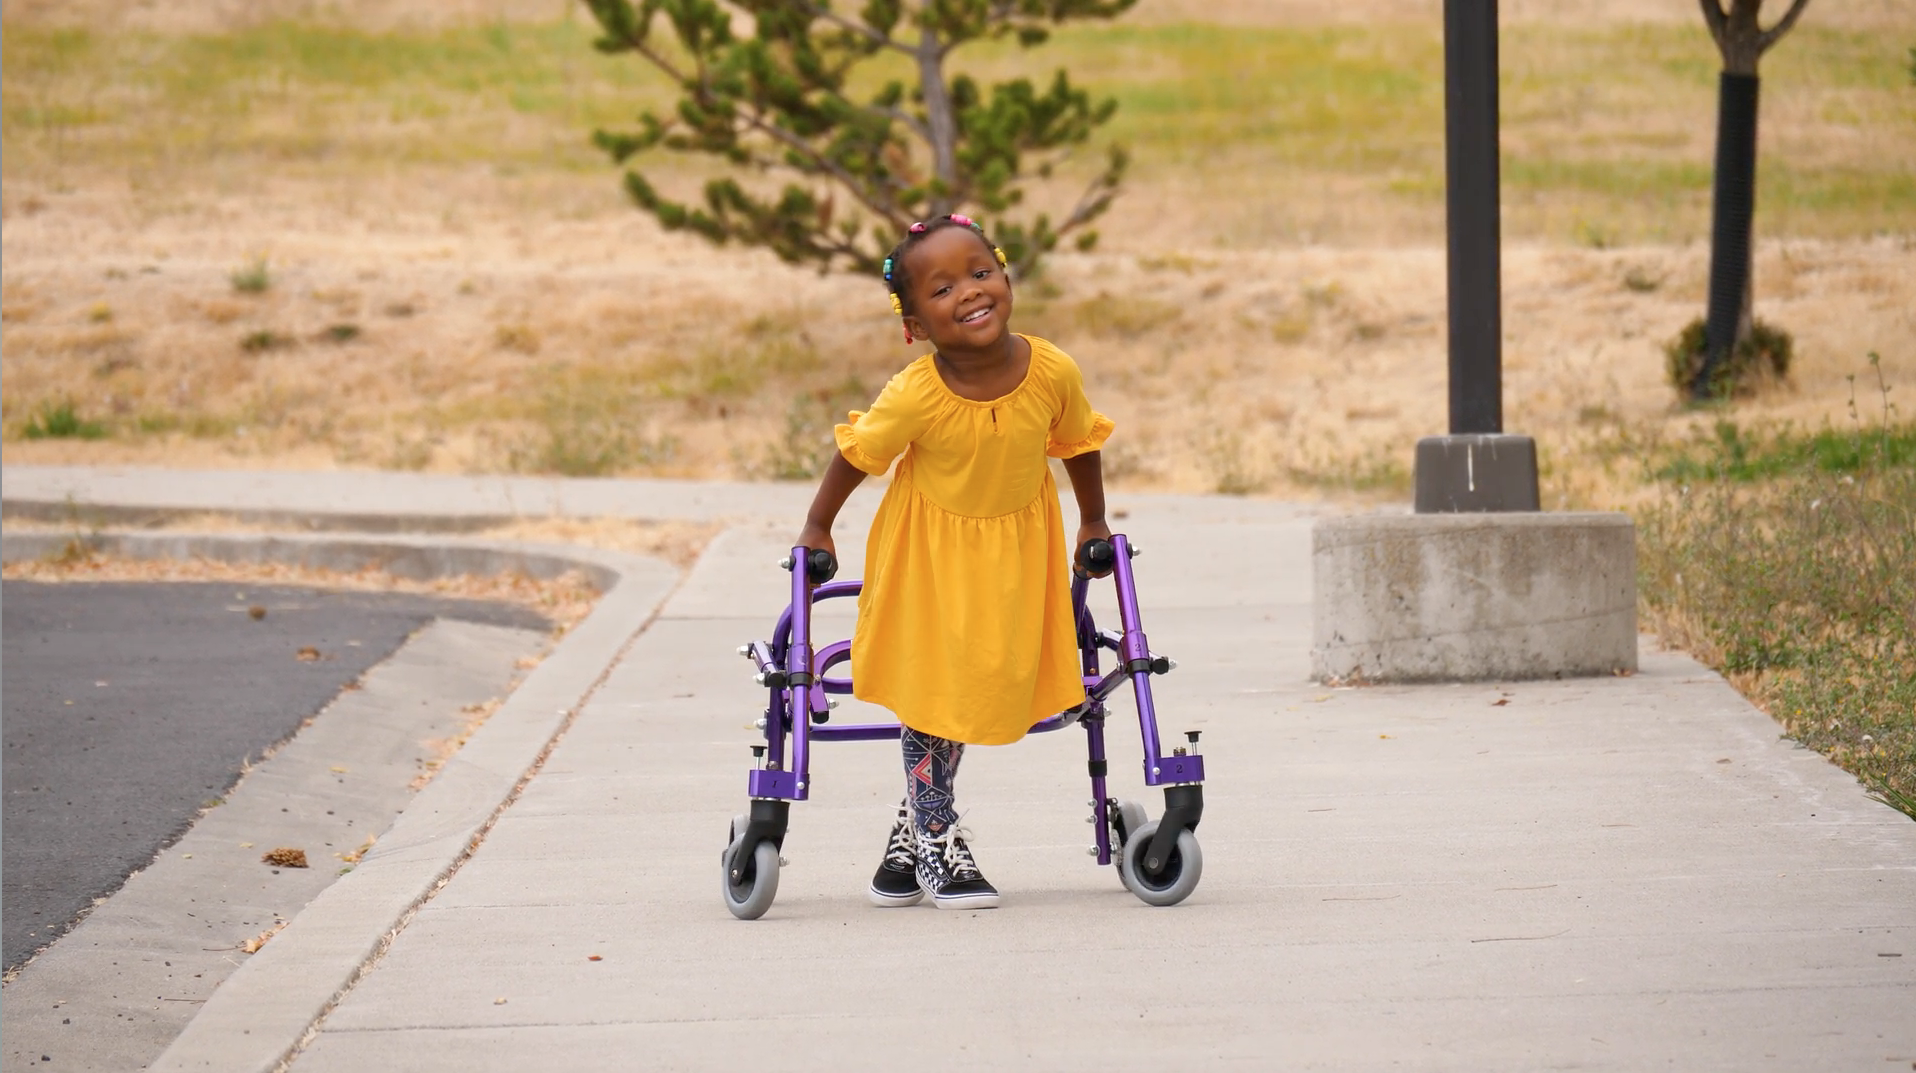 A little girl in a yellow dress in walking down the sidewalk with the assistance of a walker.